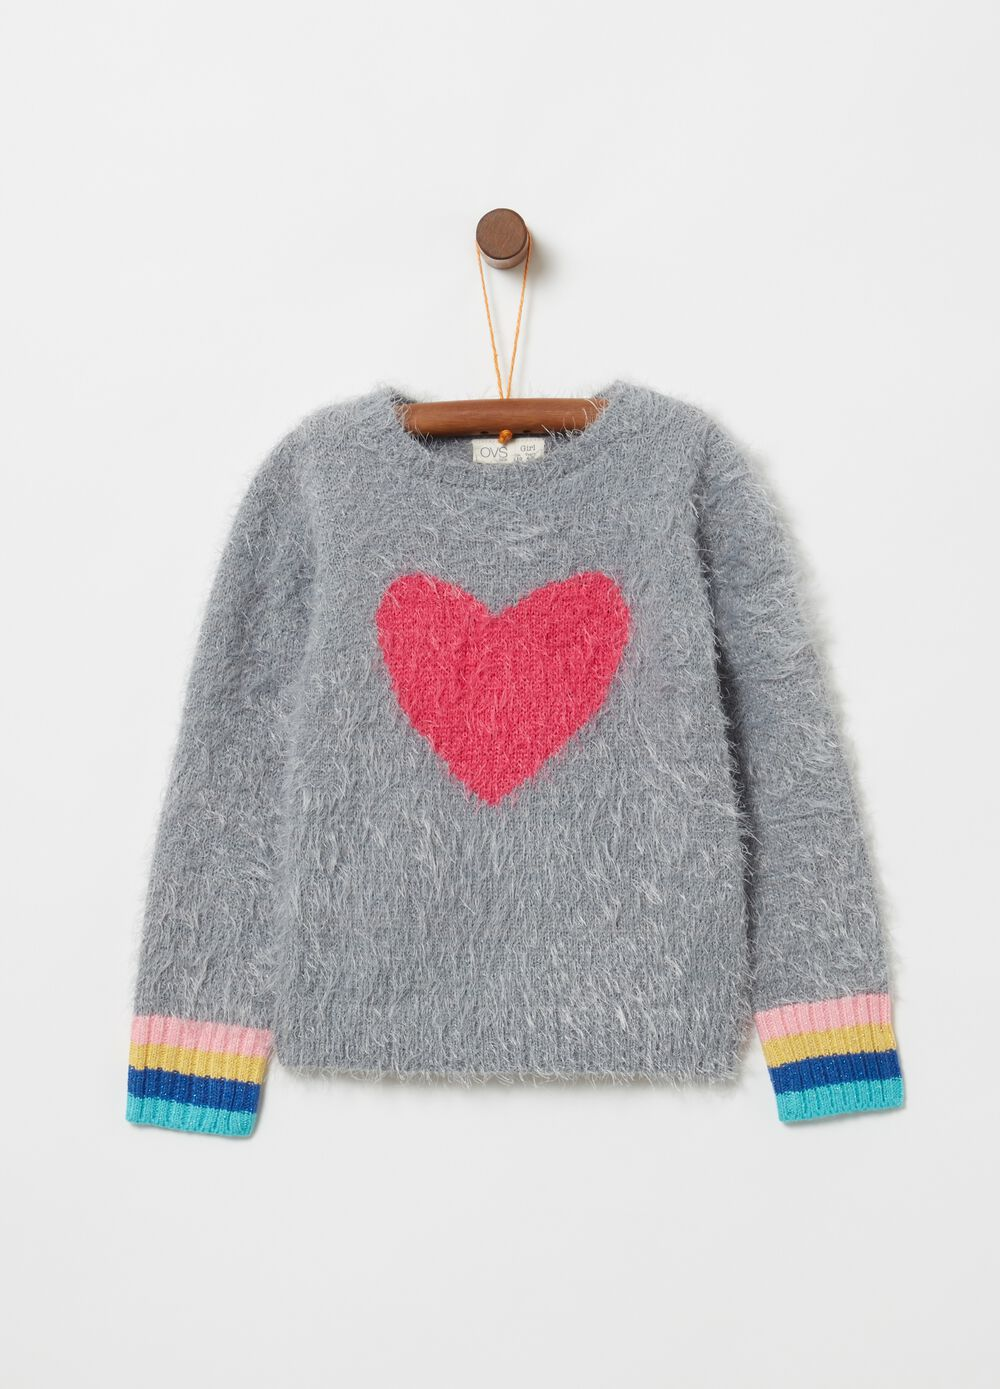 Pullover with stripes and heart embroidery